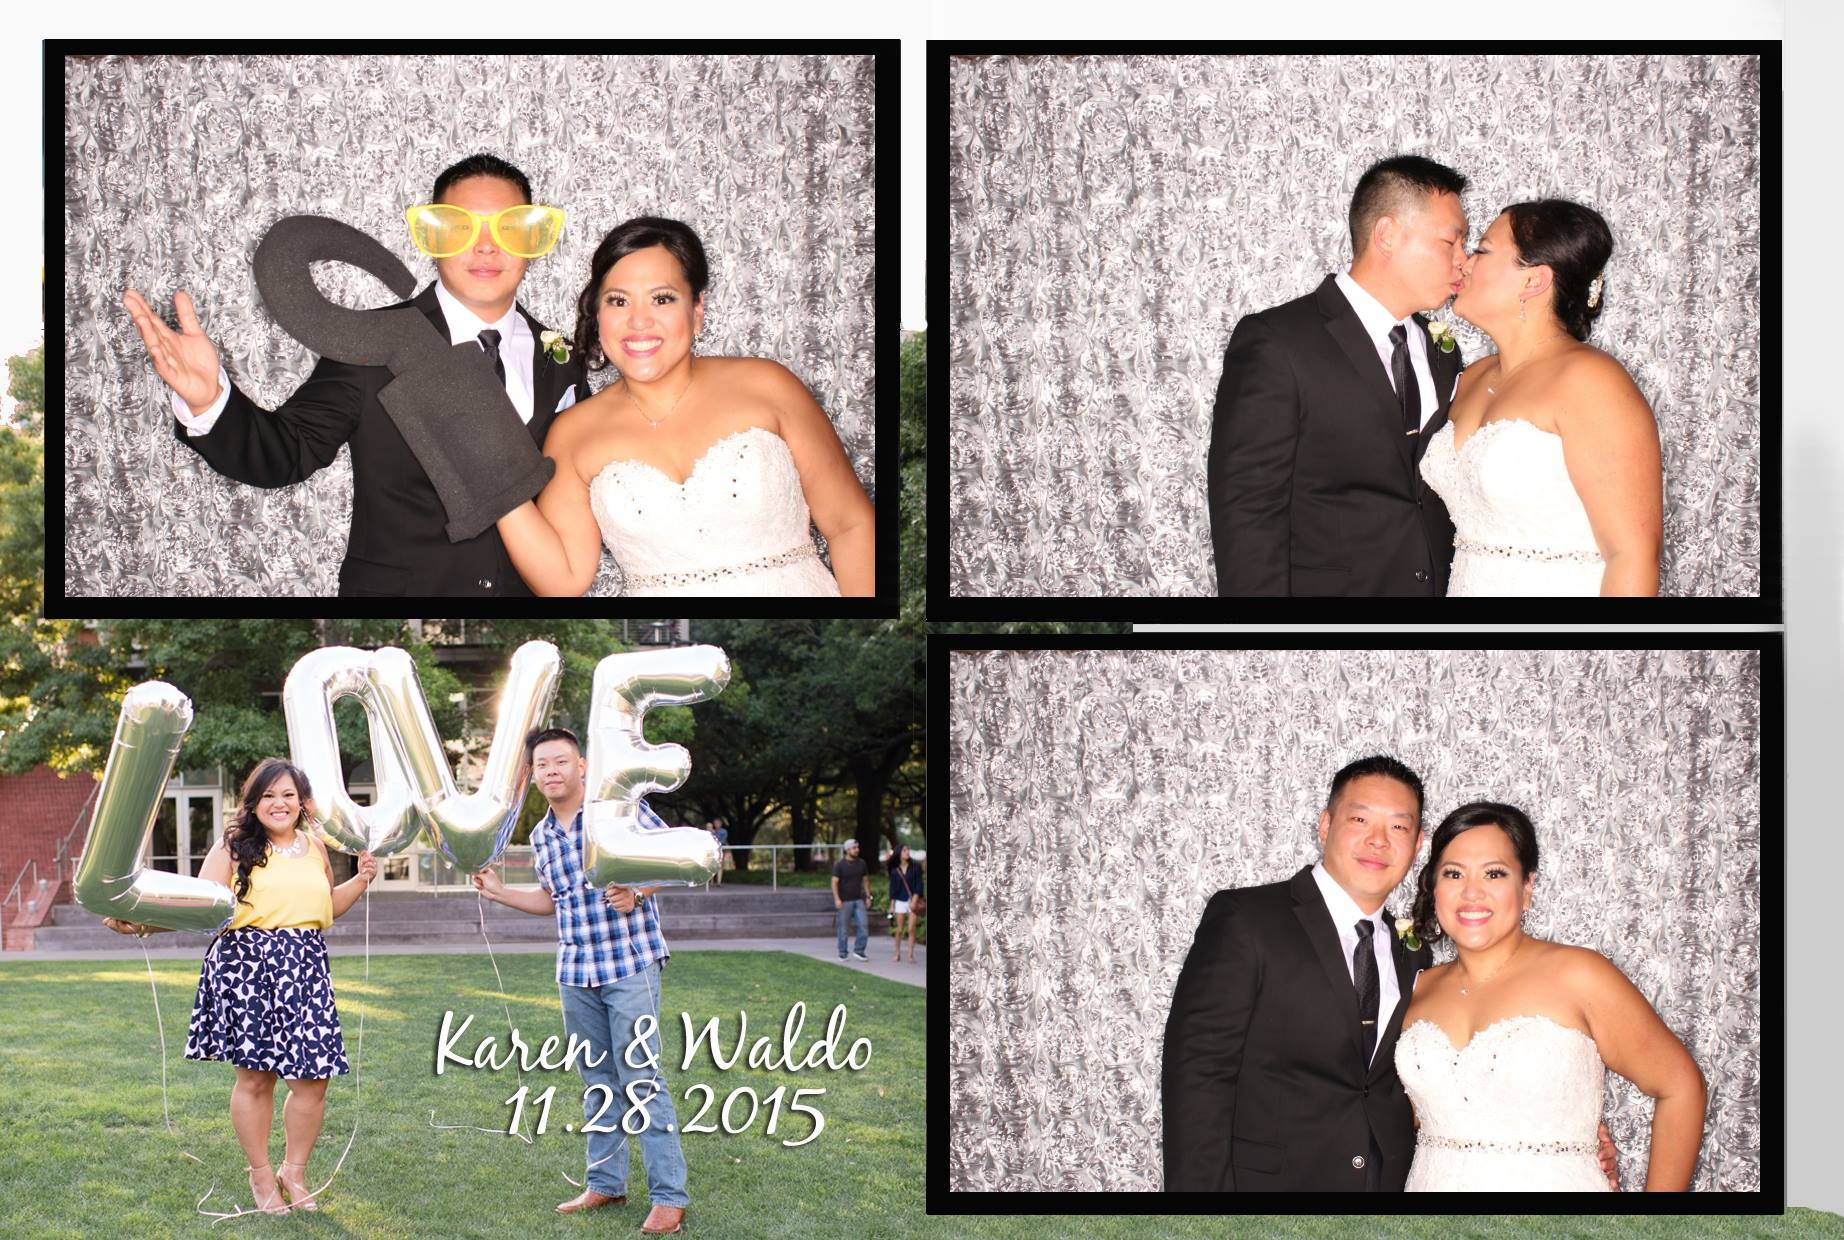 Karen & Waldo Wedding Celebration at Lakeside Country Club | Houston Photo Booth Rental